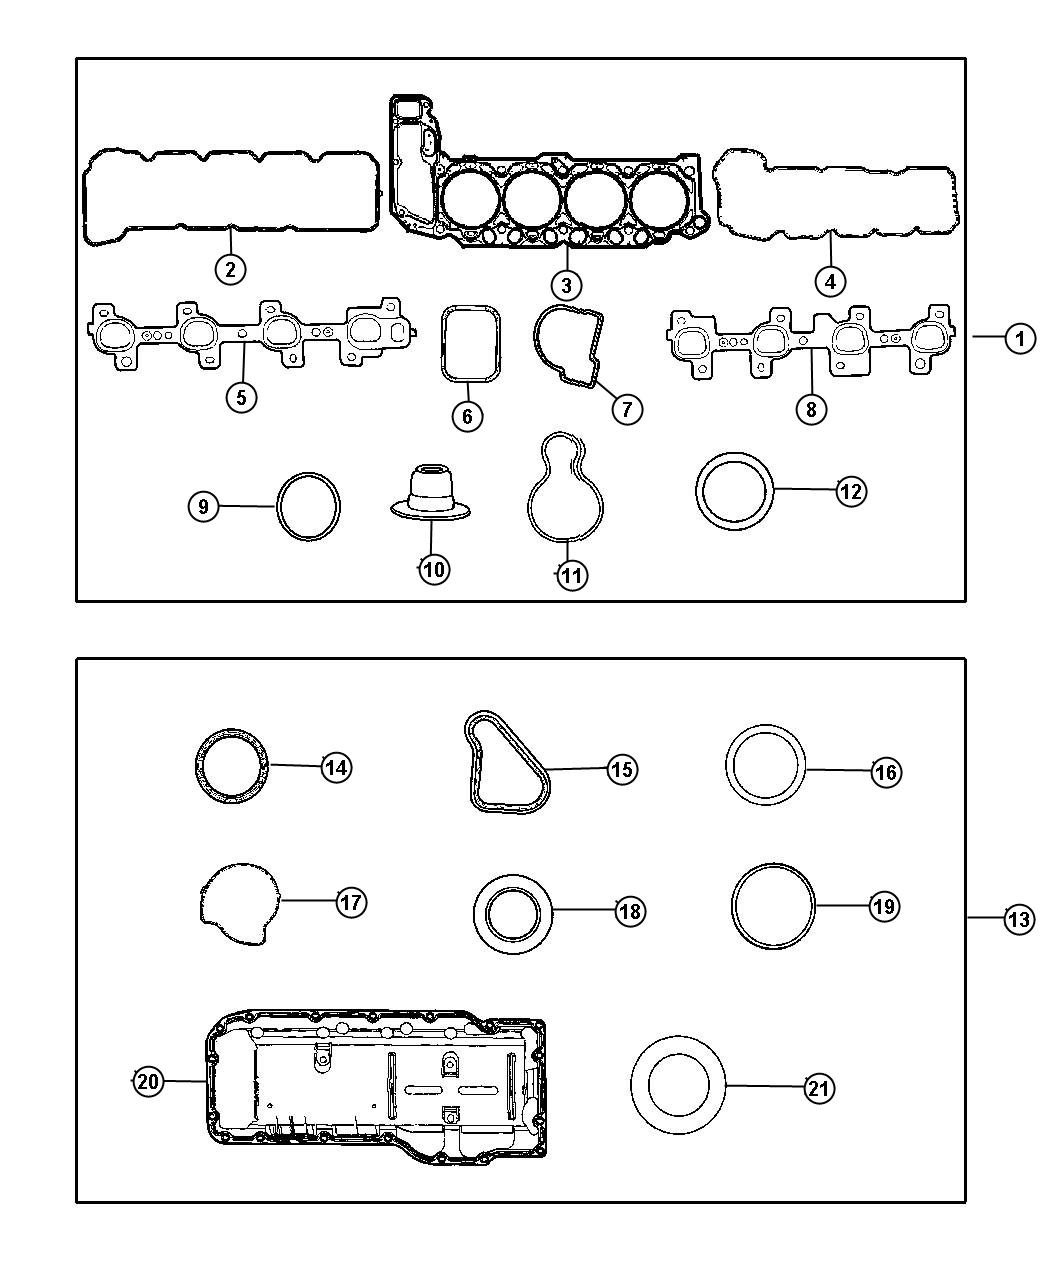 Gasket Packages 4.7L [4.7L V8 MPI Engine] [4.7L V8 FFV Engine]. Diagram